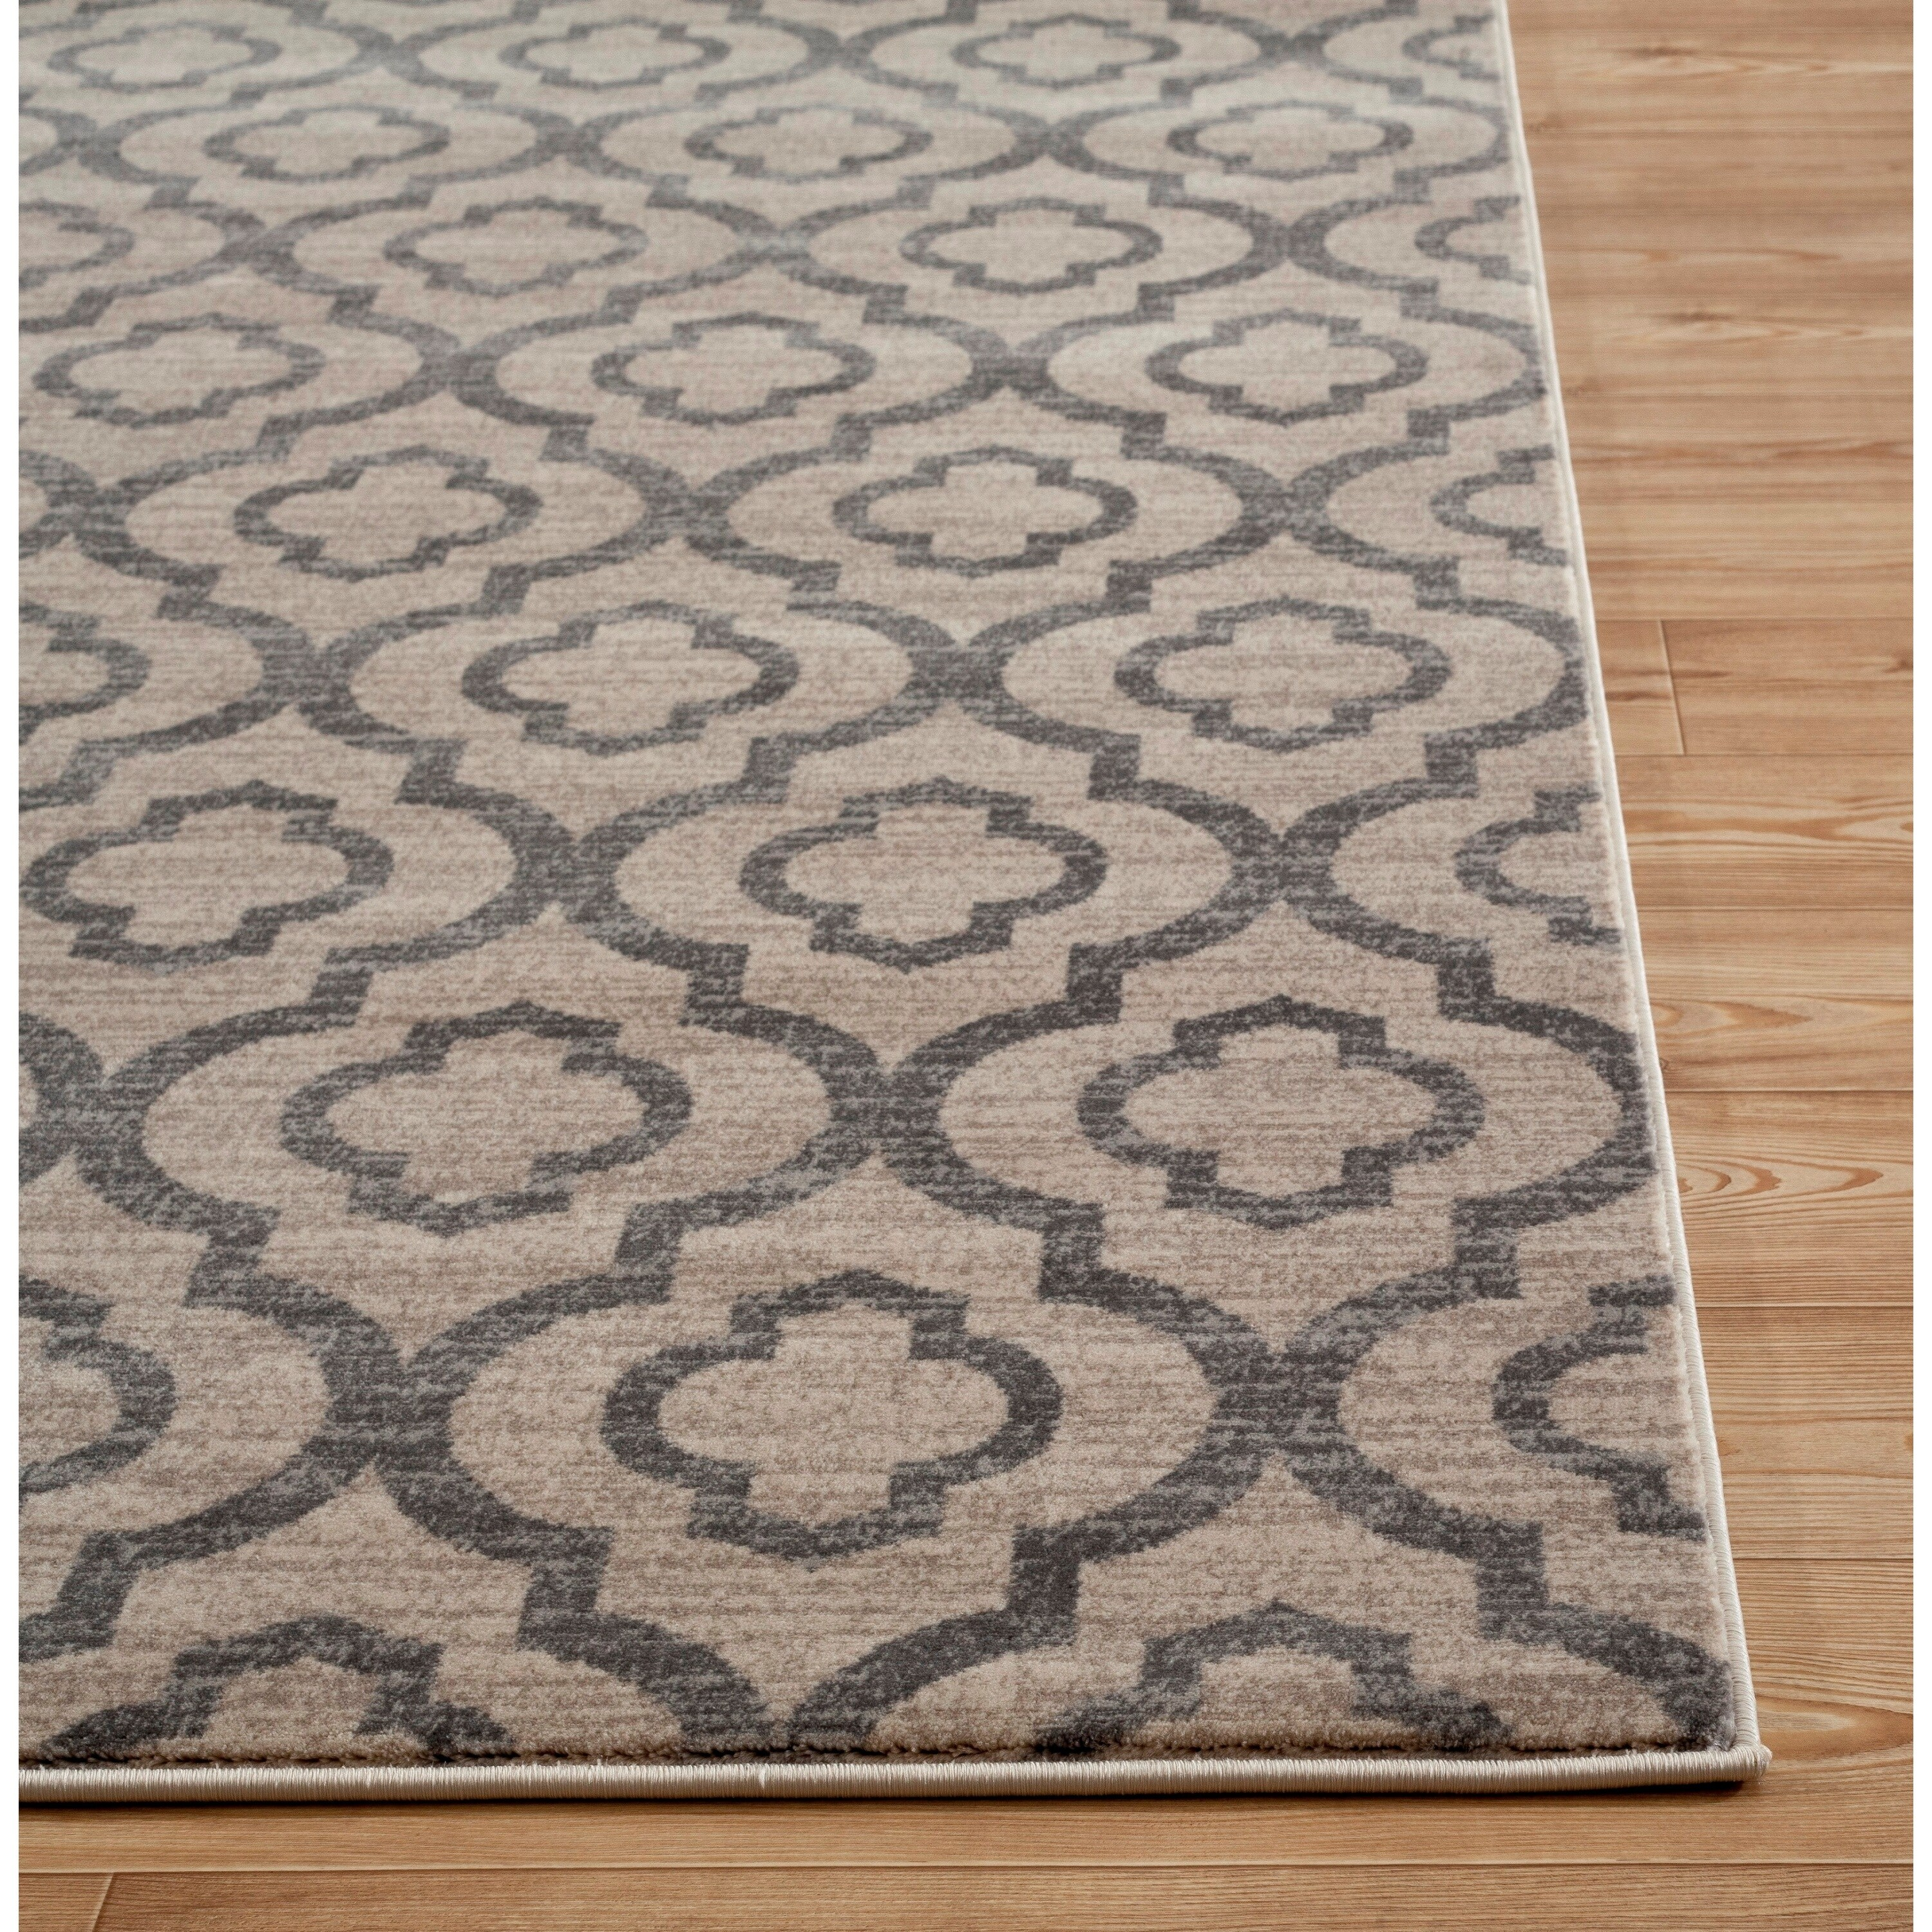 Moroccan Trellis Pattern High Quality Soft Cream Area Rug 3 X 5